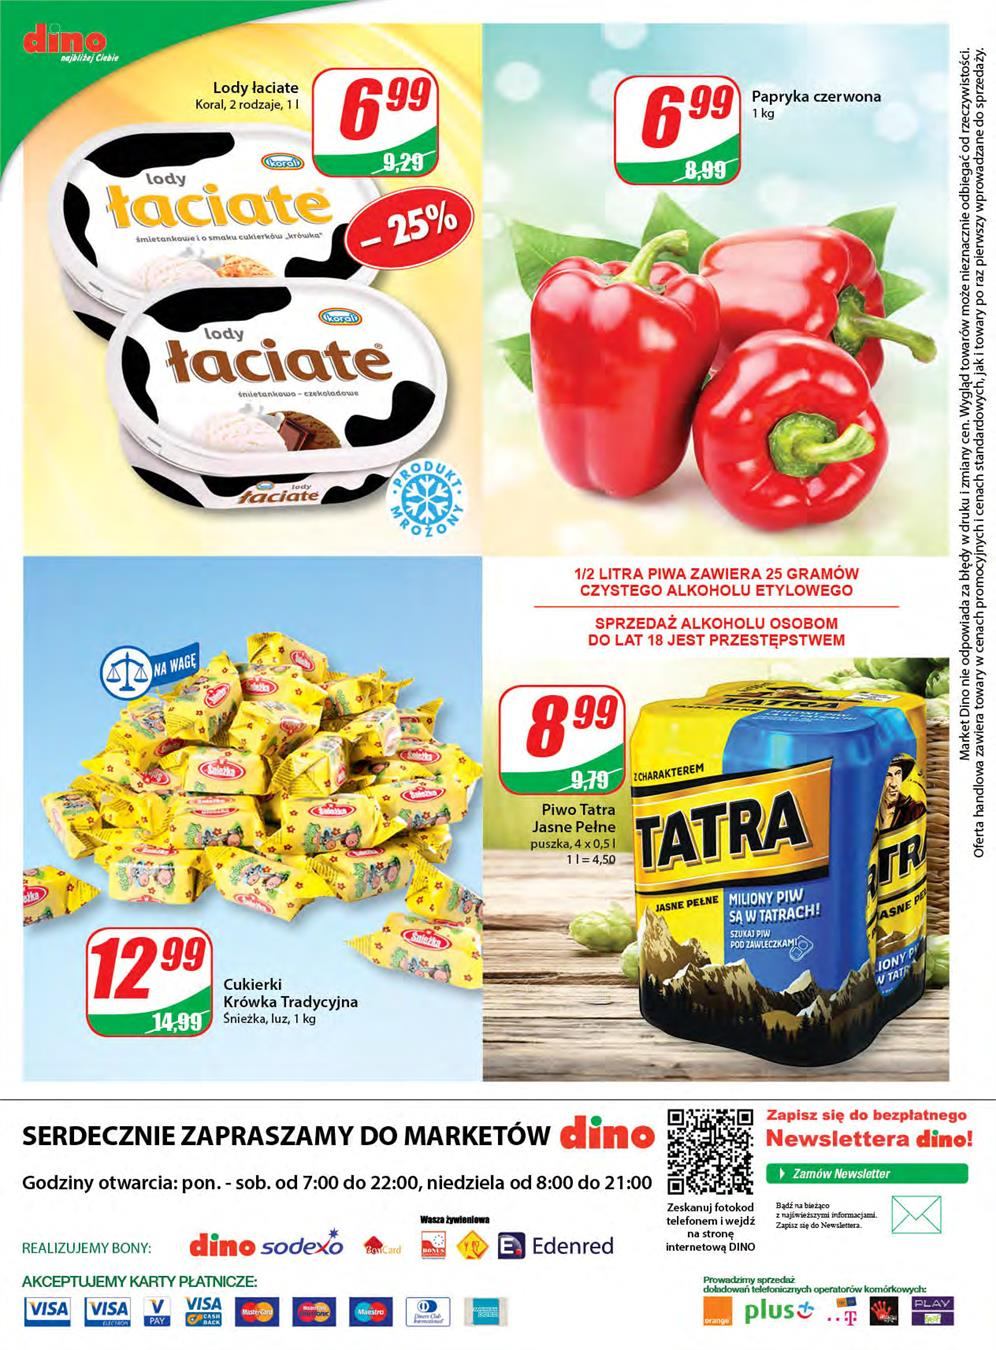 Gazetka DINO POLSKA S.A. nr 12 od 2015-06-10 do 2015-06-16